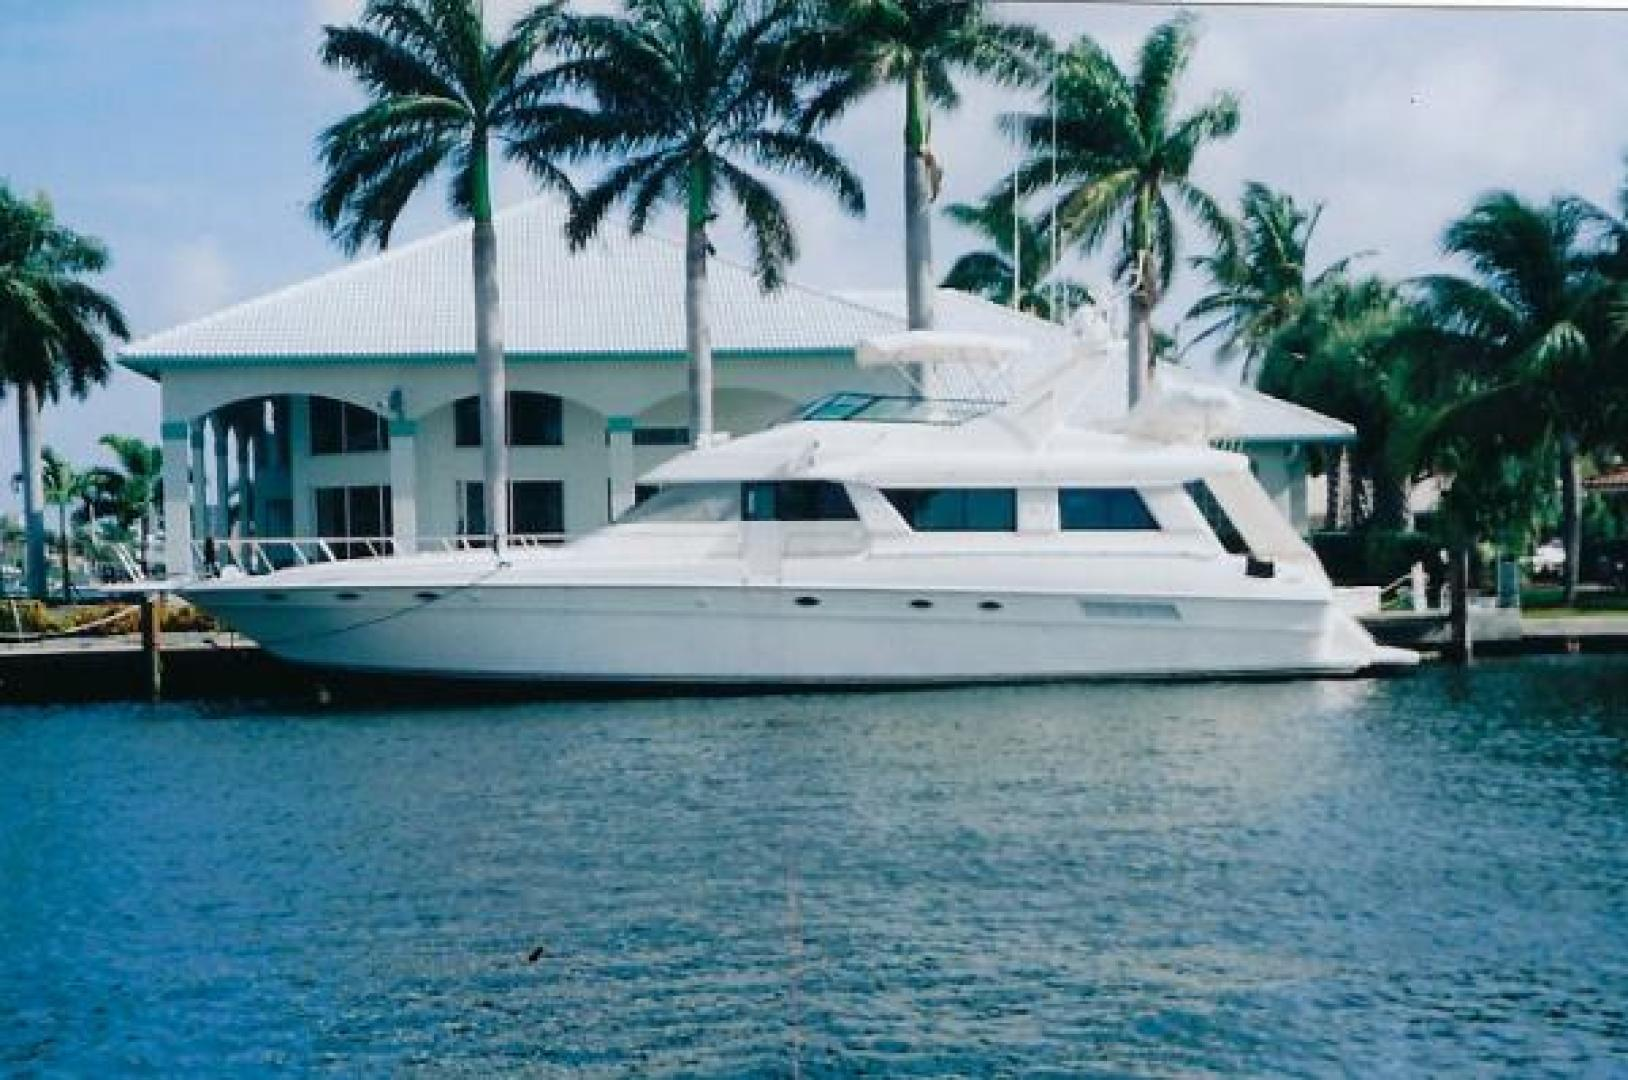 Picture Of: 65' Sea Ray 650 Cockpit Motor Yacht 1994 Yacht For Sale | 1 of 22